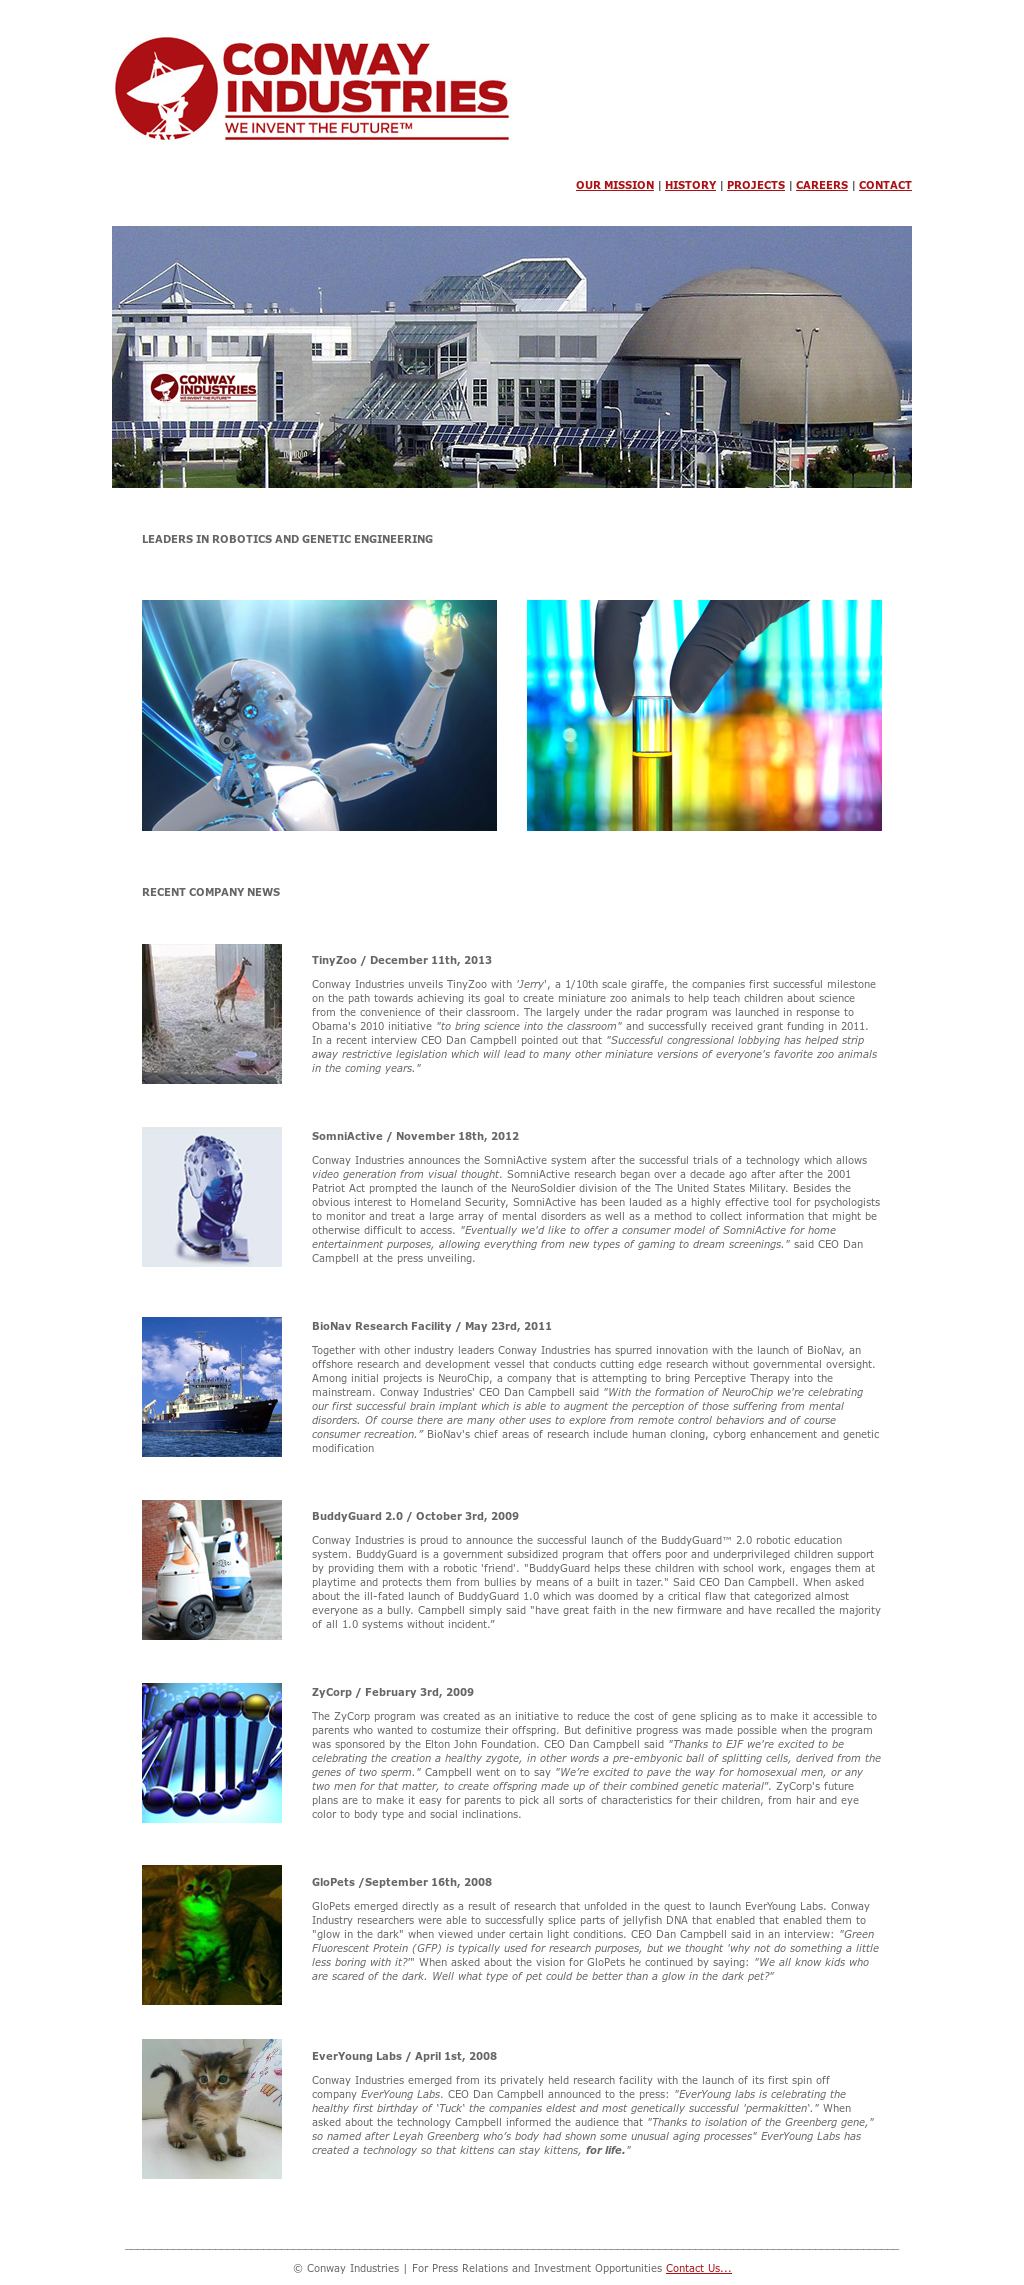 conway industries website history